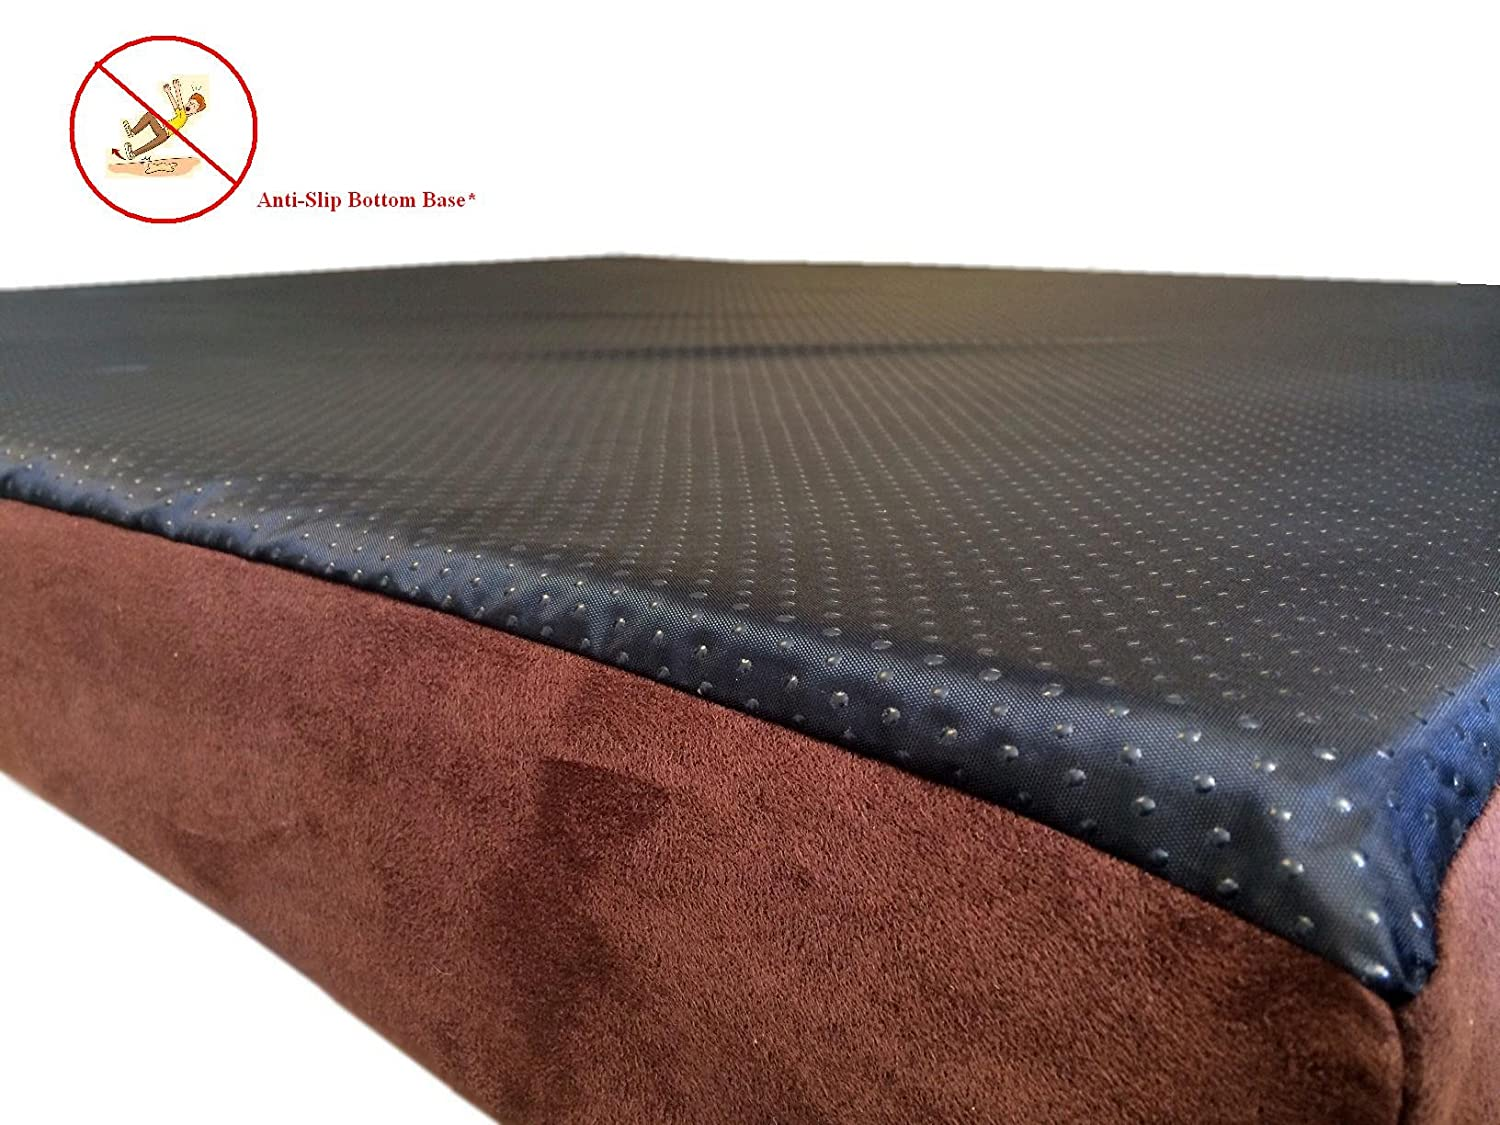 55 x47 x4 Chocolate Brown Anti Slip Washable Microfiber Suede Waterproof Orthopedic True Solid High Density Memory Foam Therapeutic Pad Pet Super Big Dog Bed Crate FREE 2nd External Washable Cover